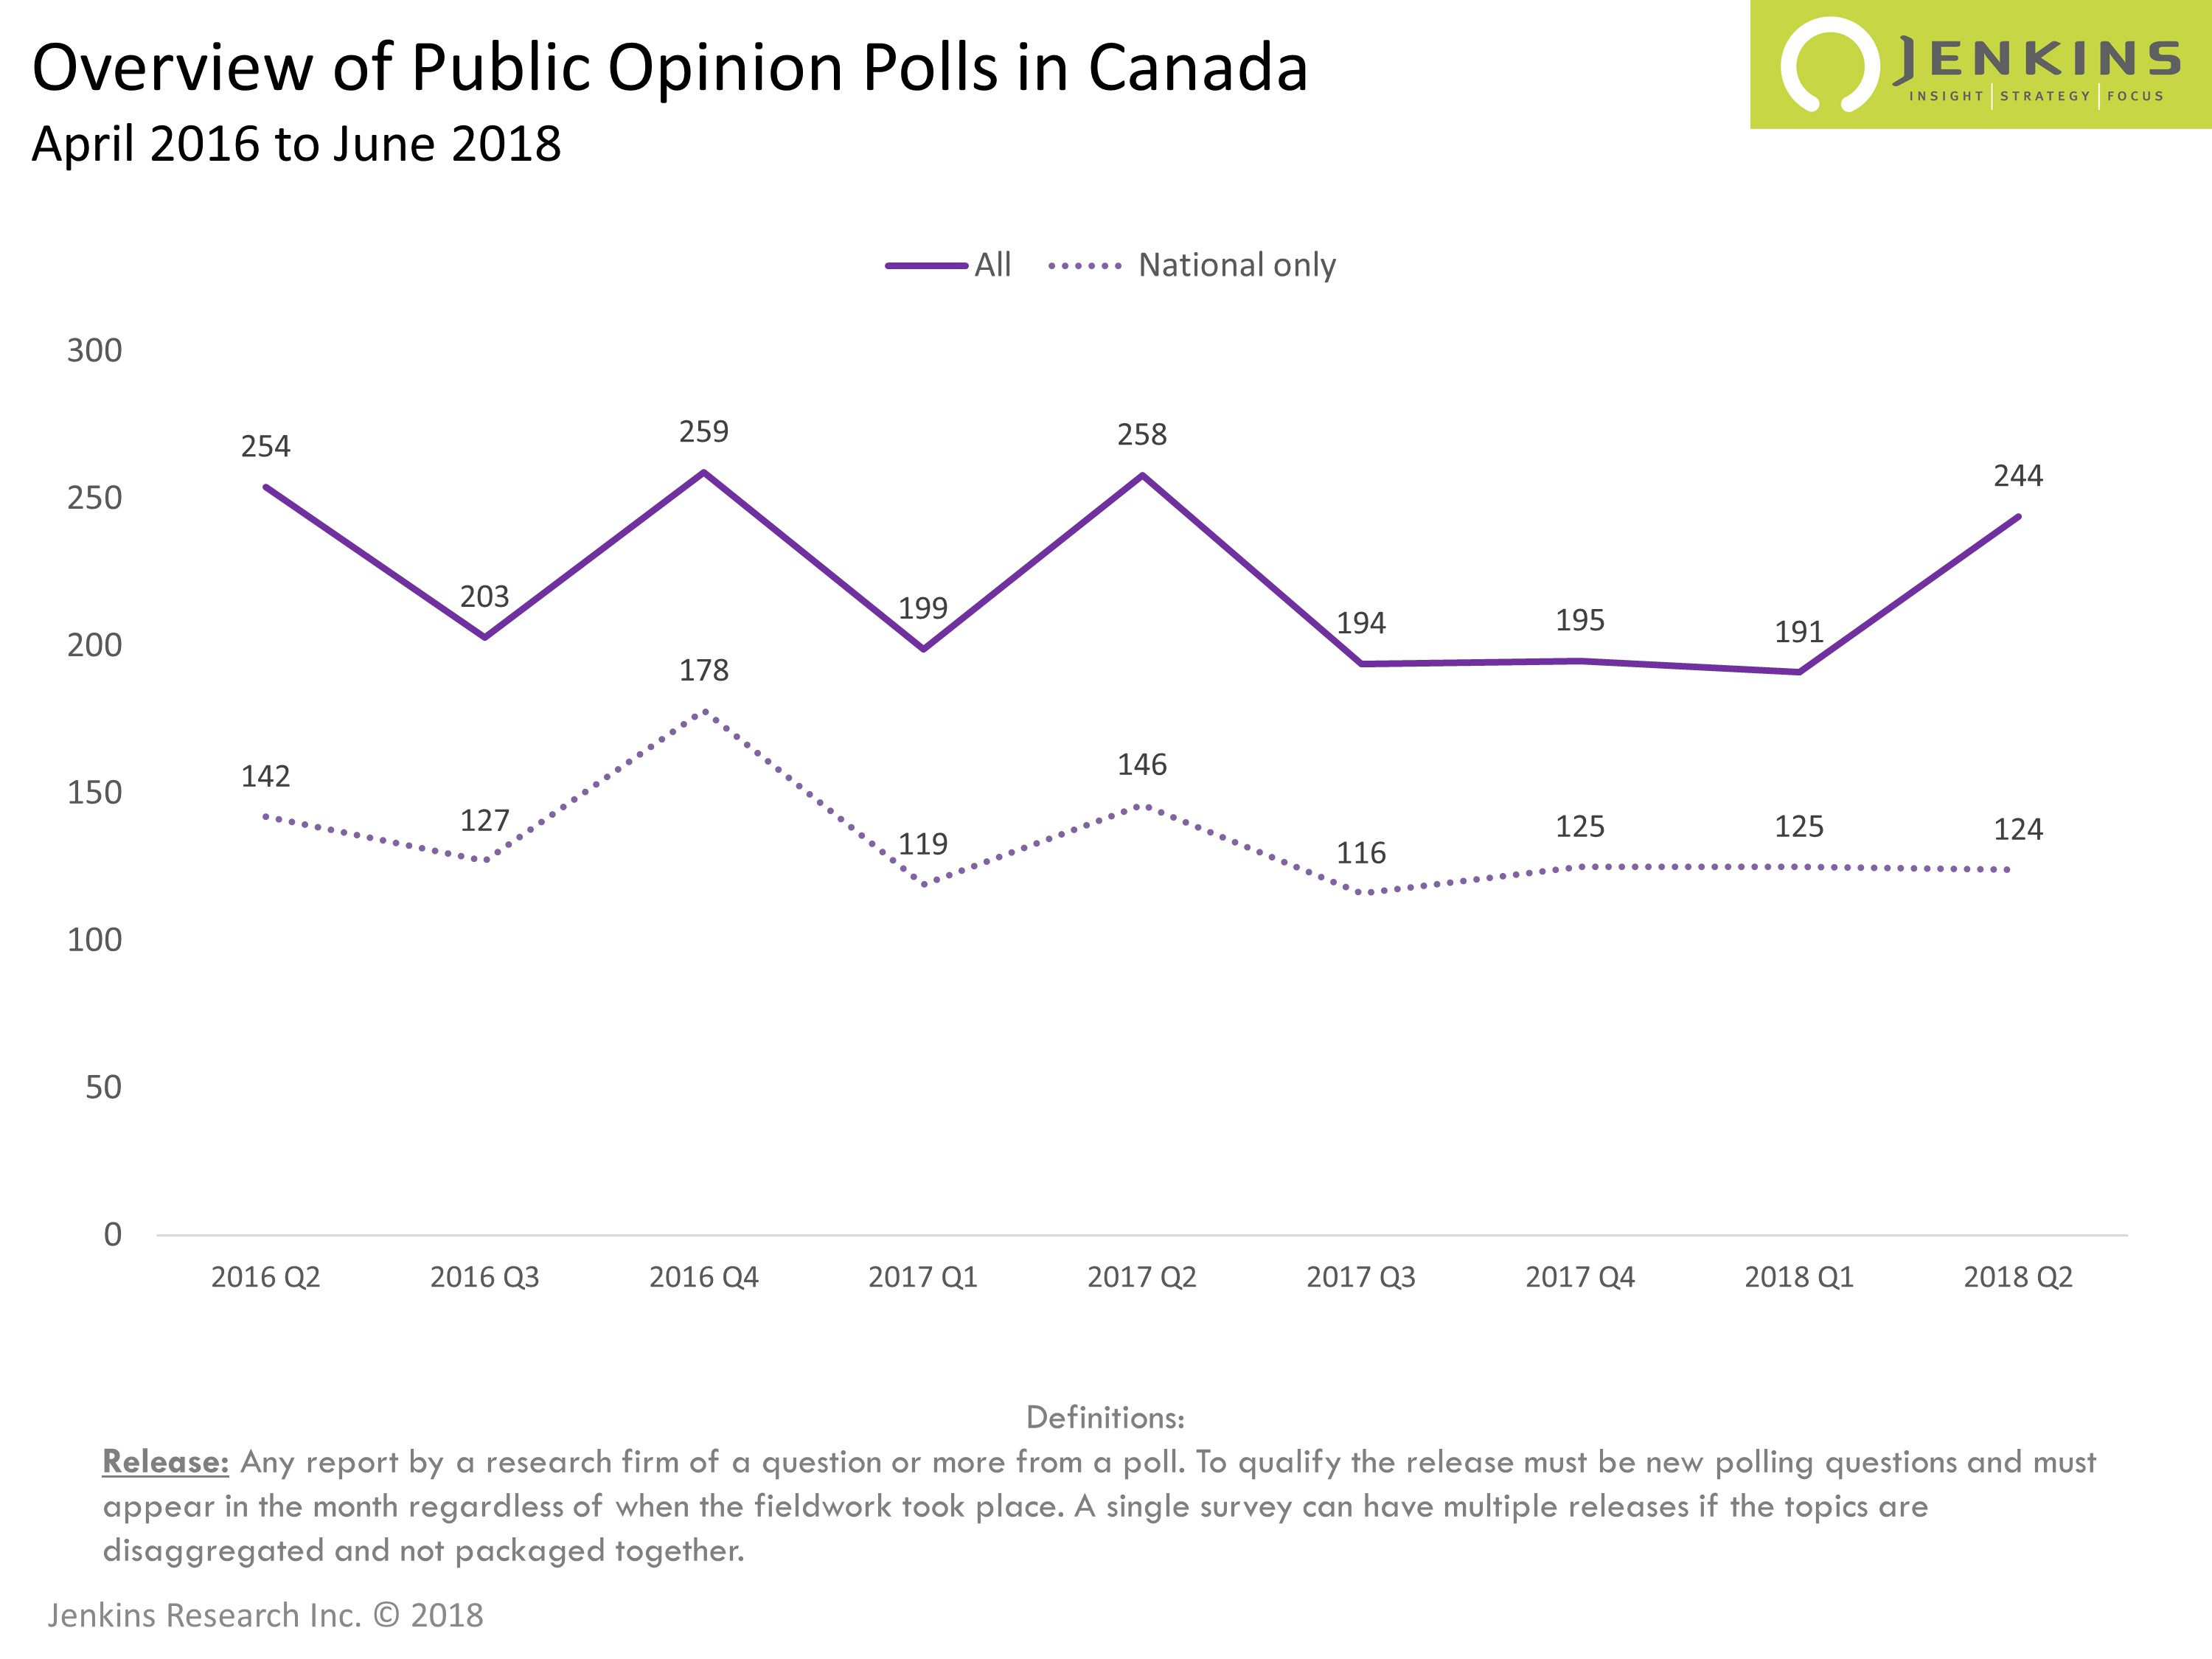 Ontario Election Drives Up Number of Q2 Polls